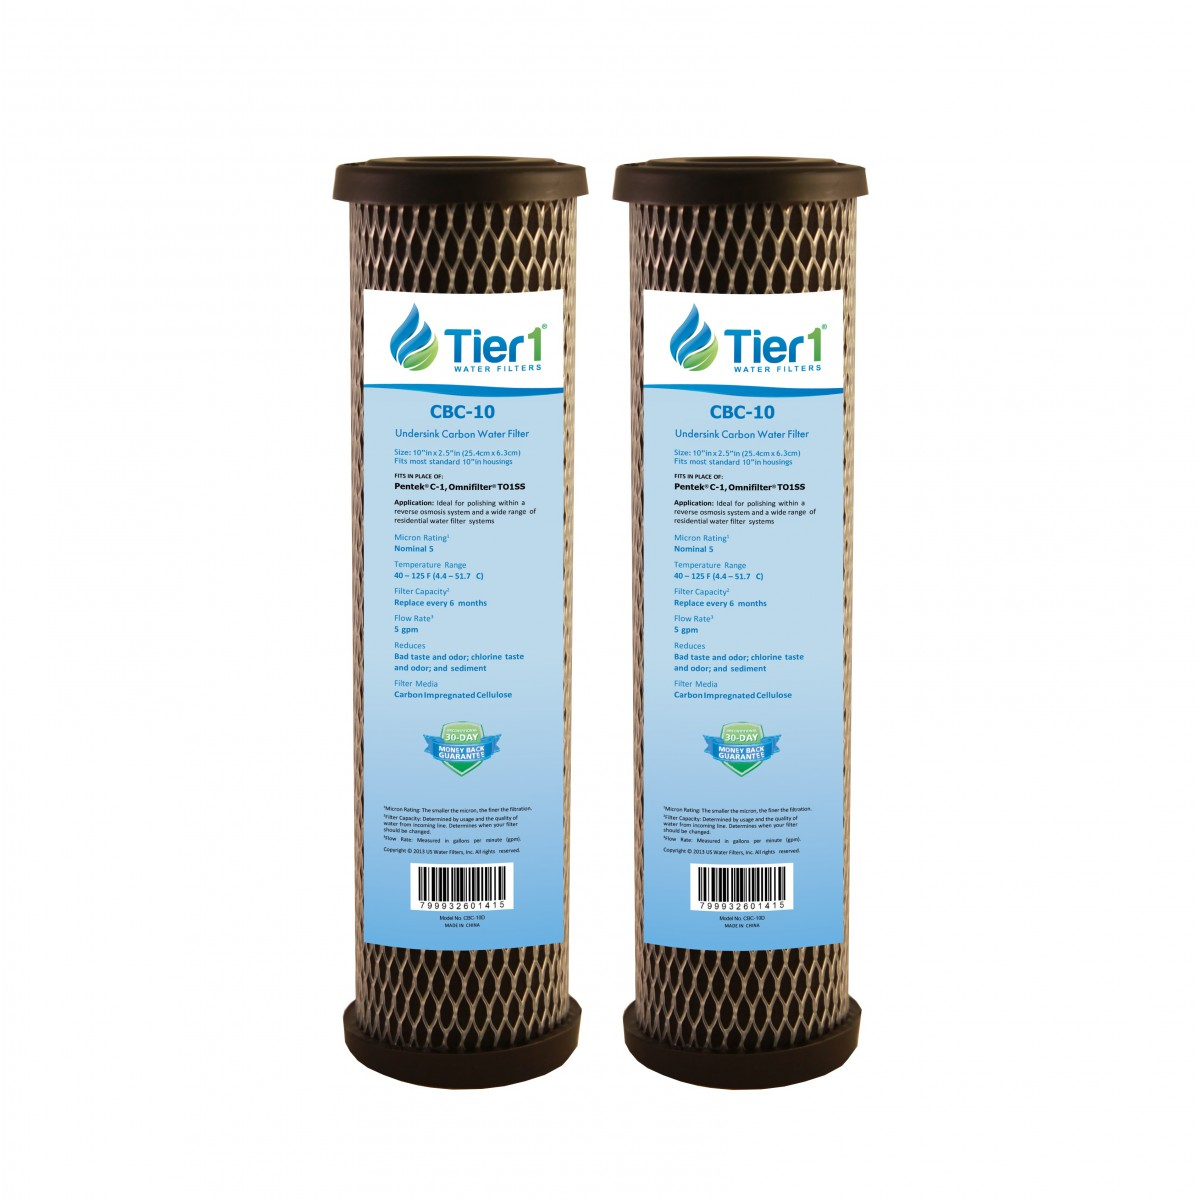 Carbon Water Filter System Pentek C1 Comparable Carbon Block Water Filter By Tier1 2 Pack